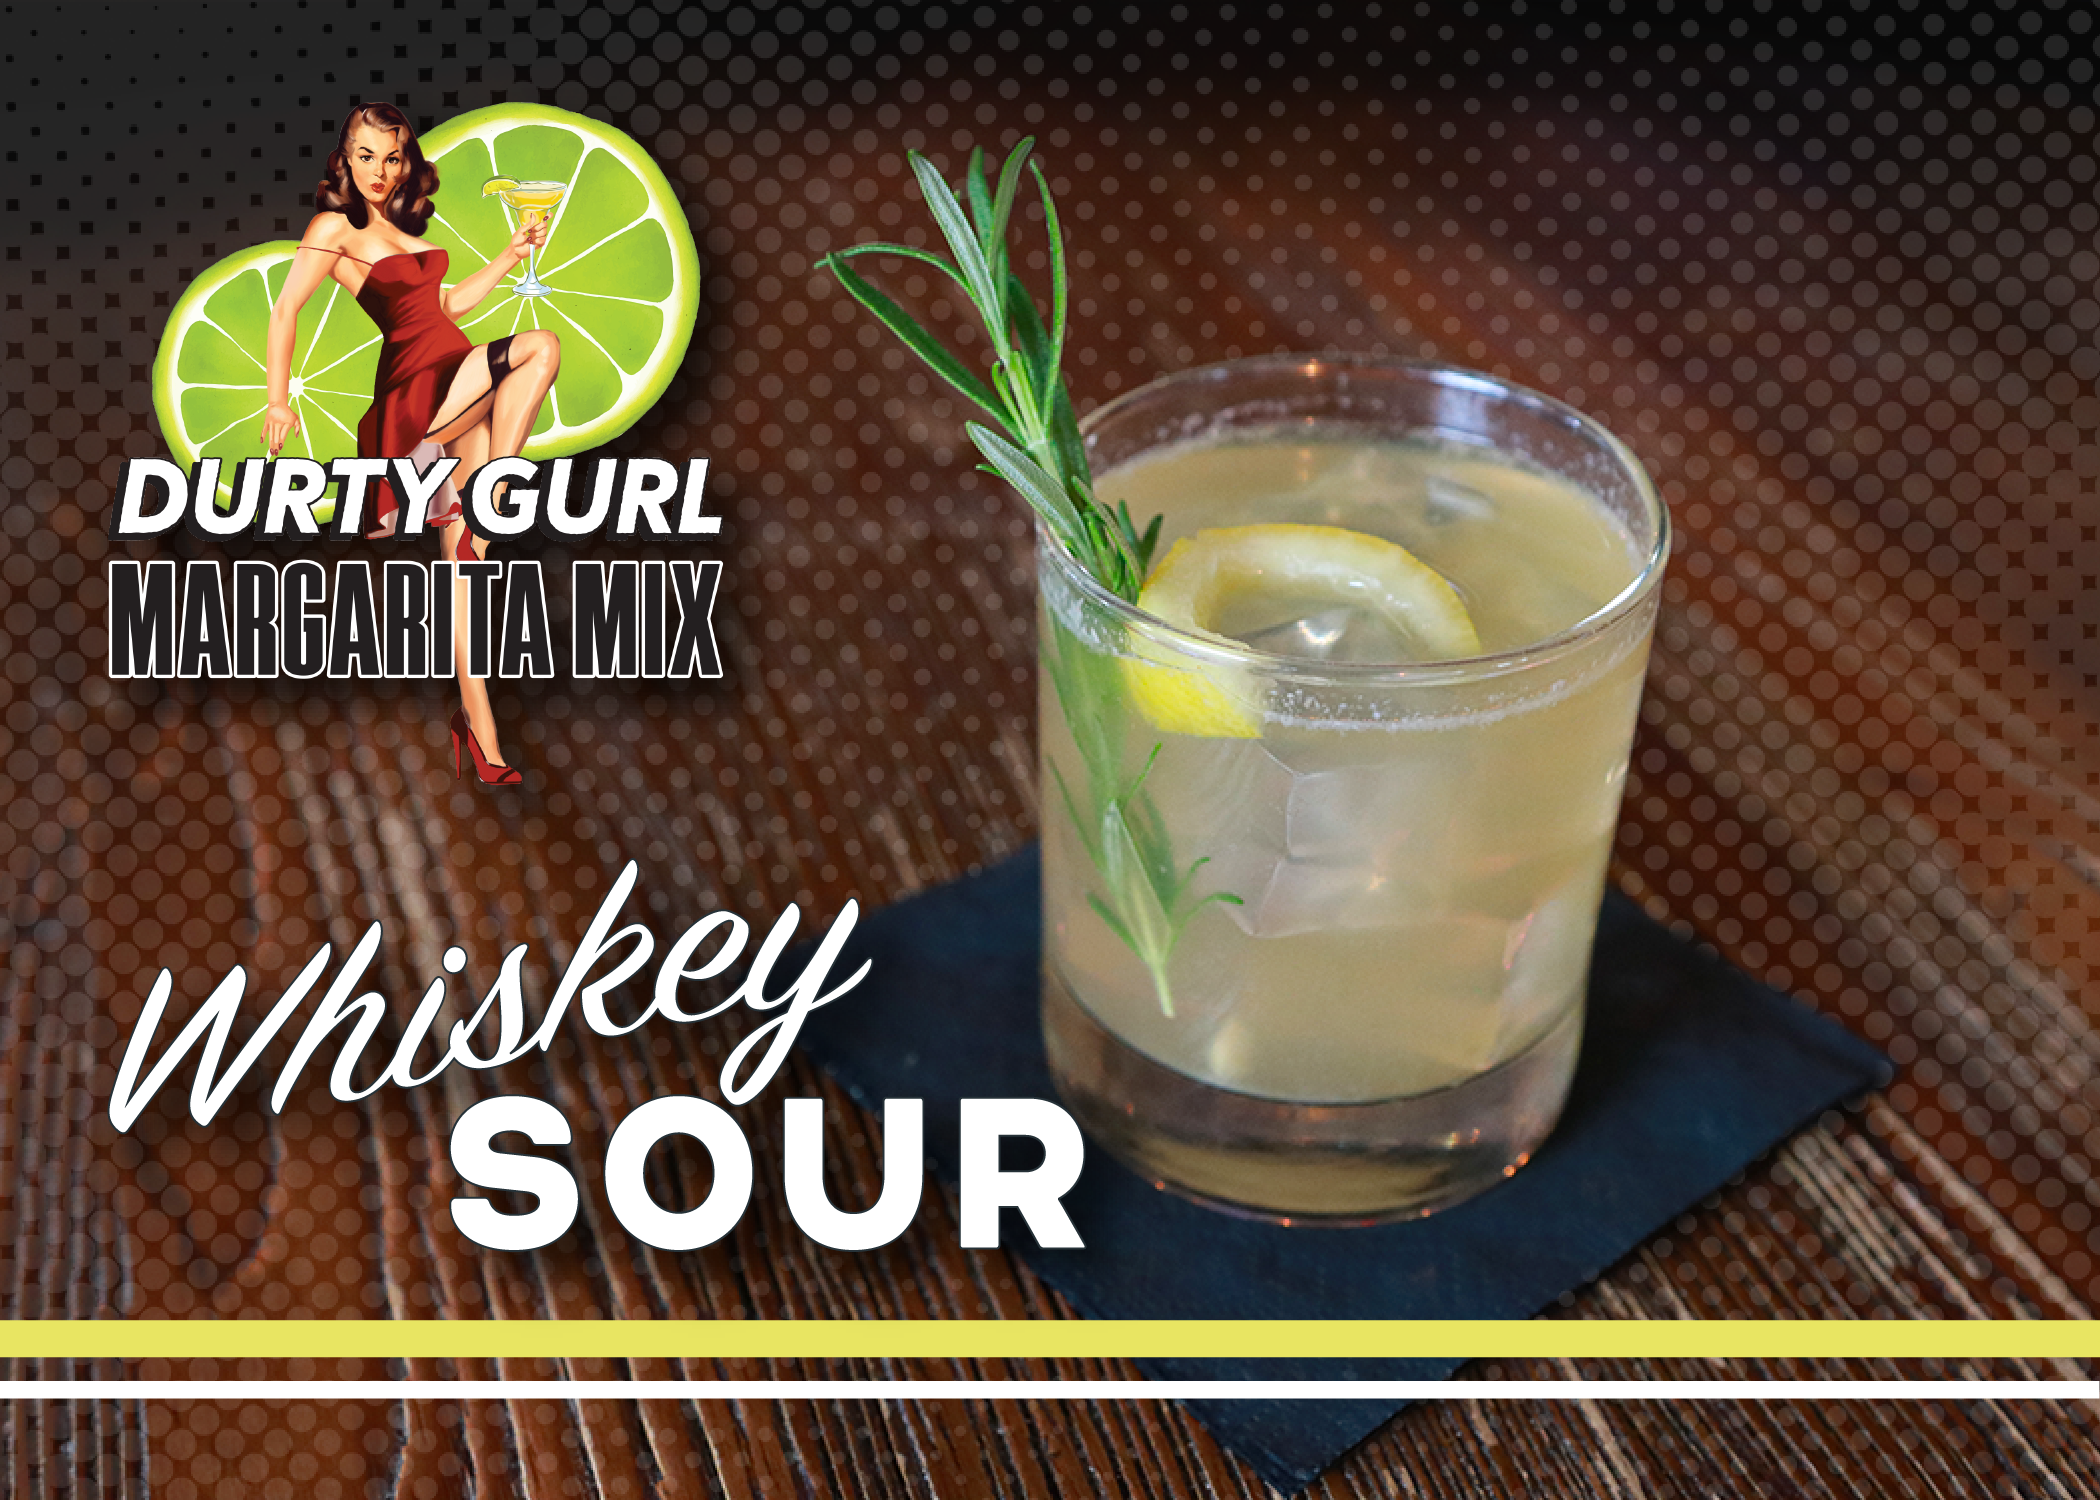 whiskey sour recipe-01.png